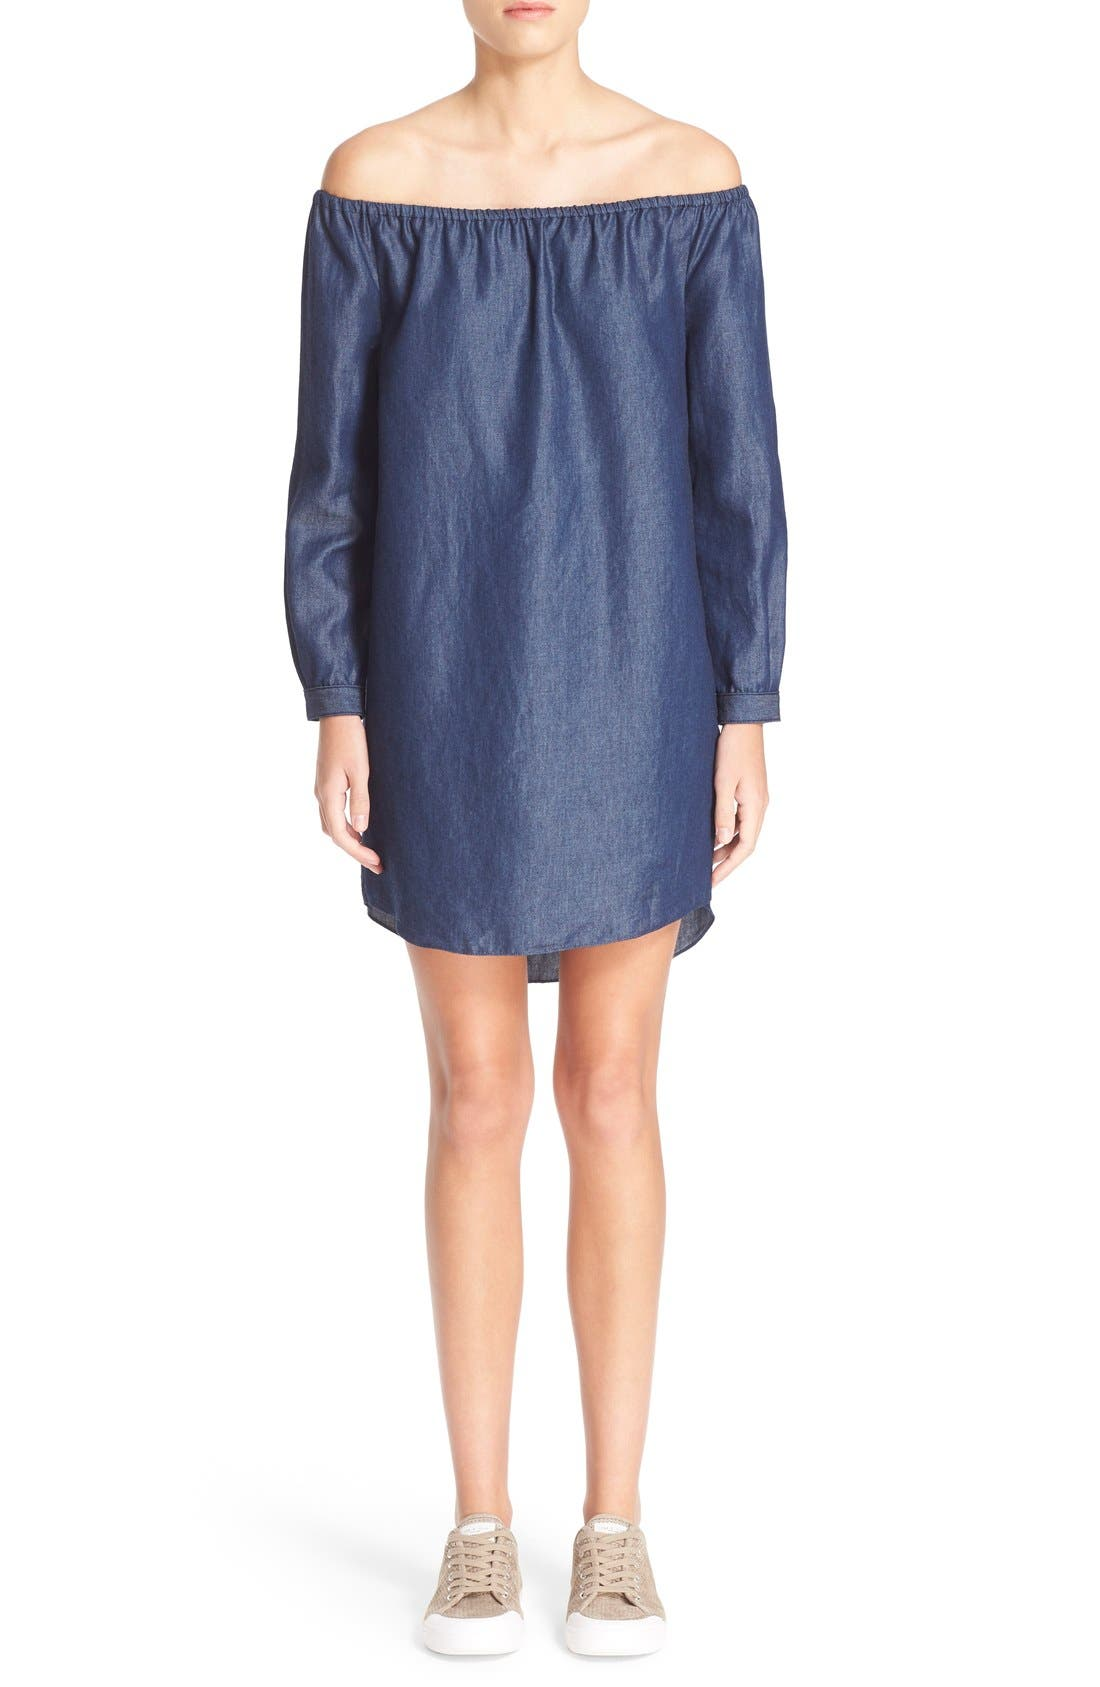 Alternate Image 1 Selected - rag & bone/JEAN Off the Shoulder Shift Dress